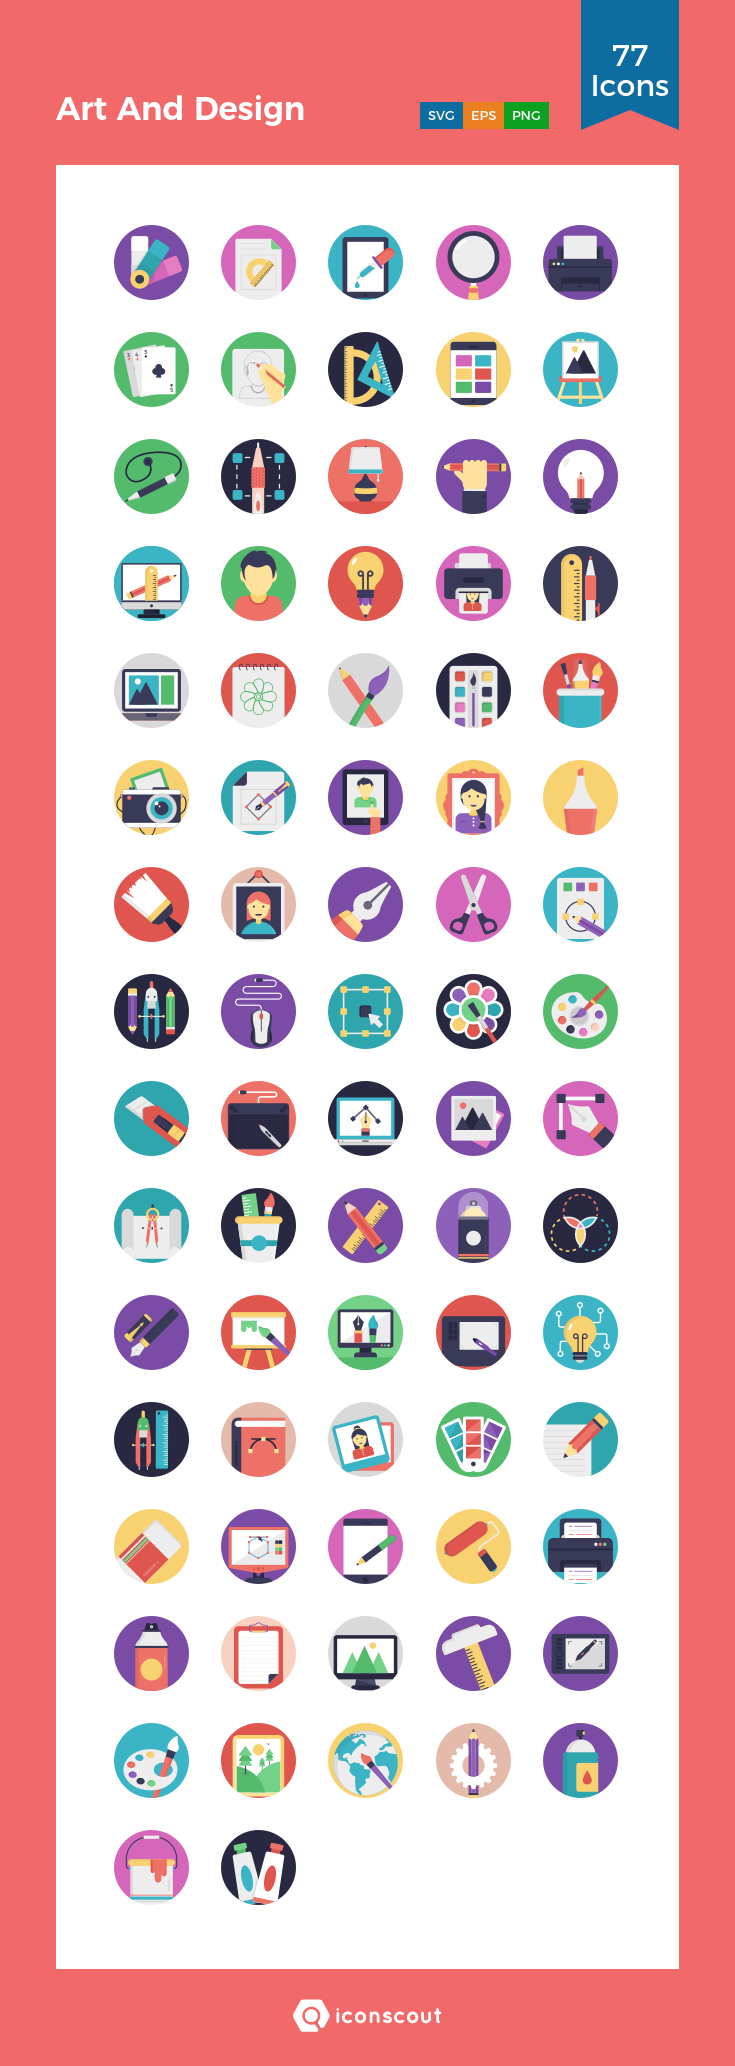 Download Download Art And Design Icon pack - Available in SVG, PNG ...